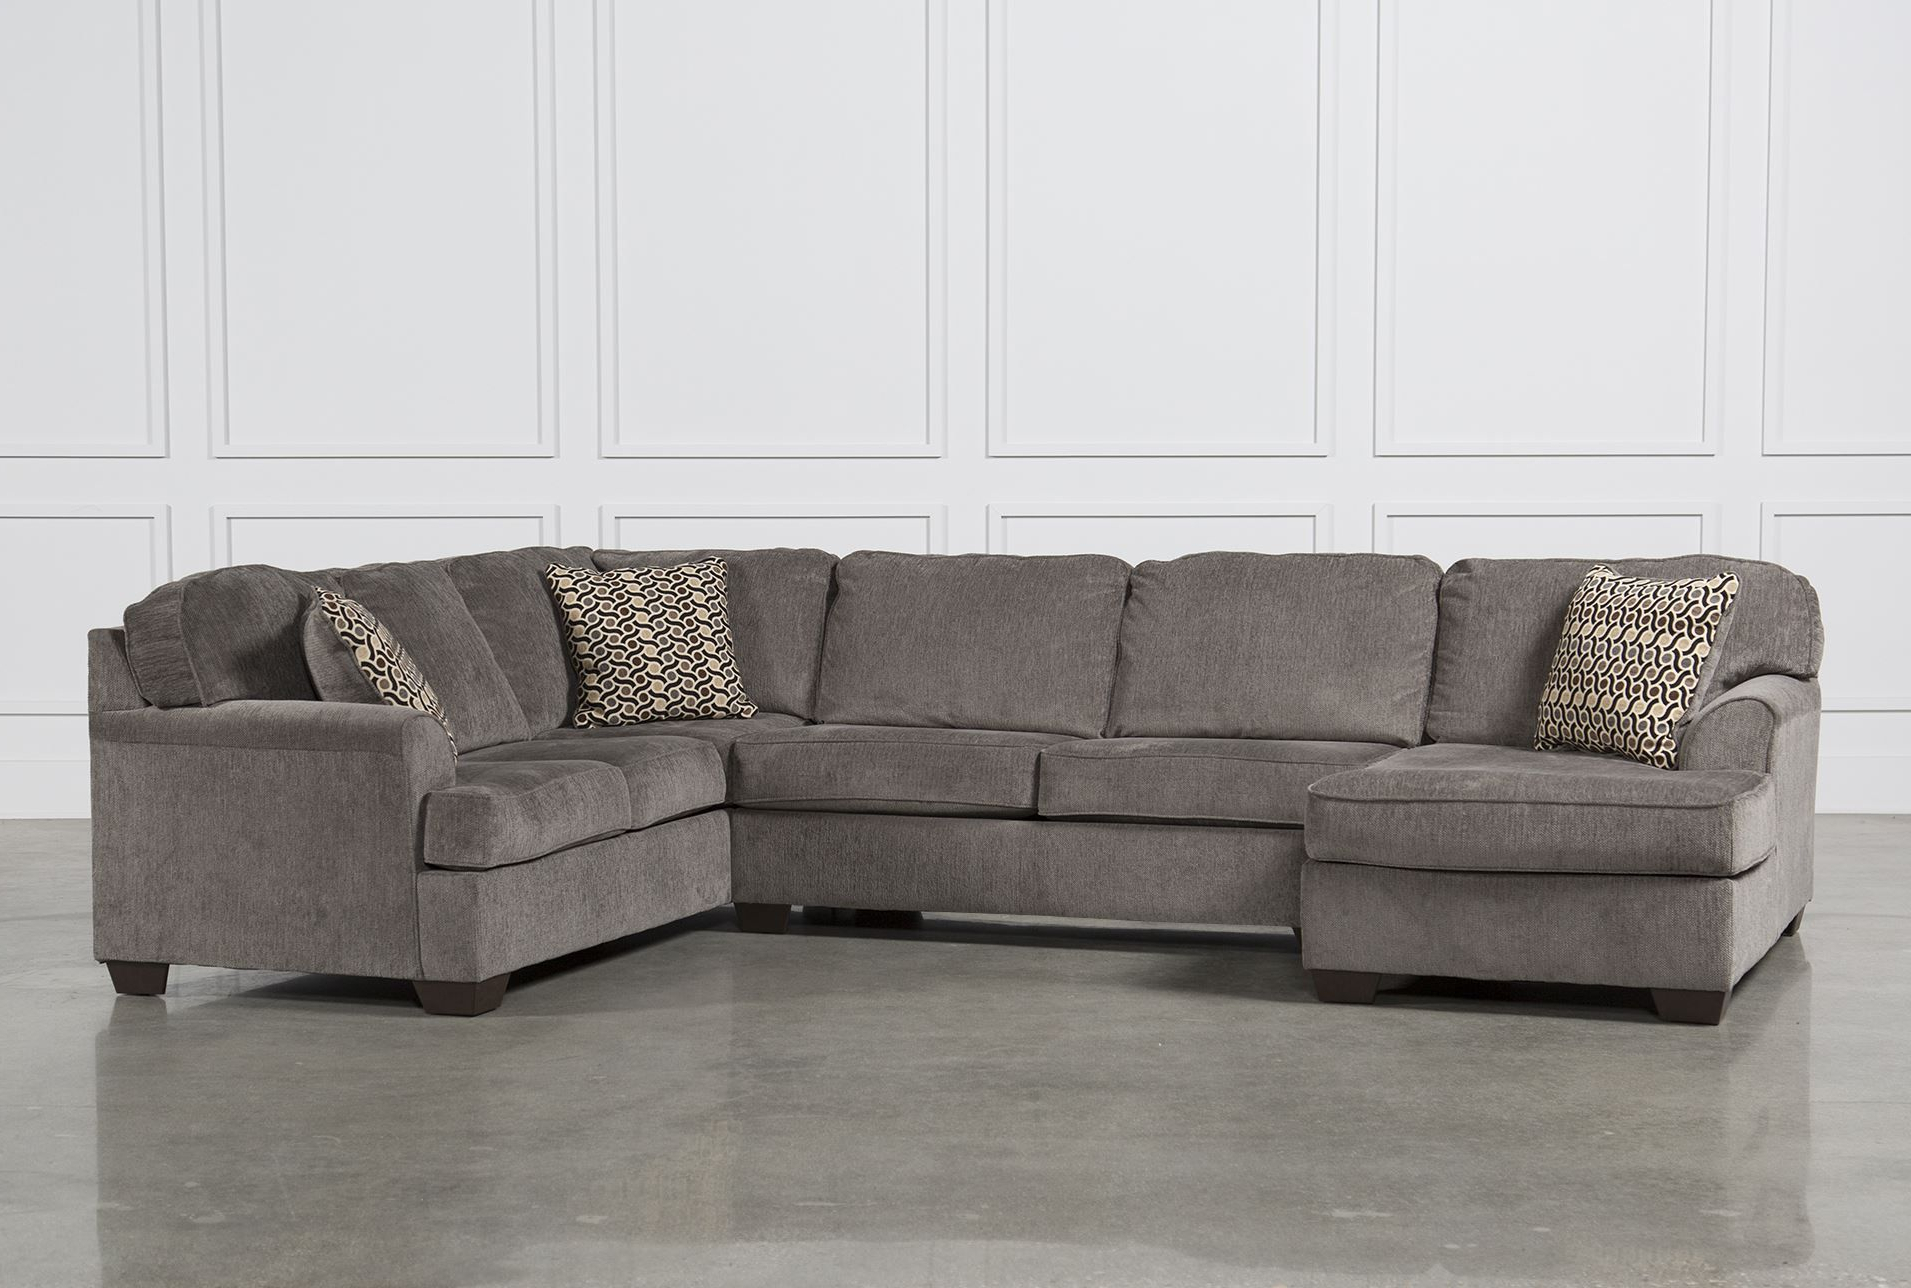 Delano Smoke 3 Piece Sectionals Inside Widely Used Loric Smoke 3 Piece Sectional W/laf Chaise – Signature $ (View 8 of 20)